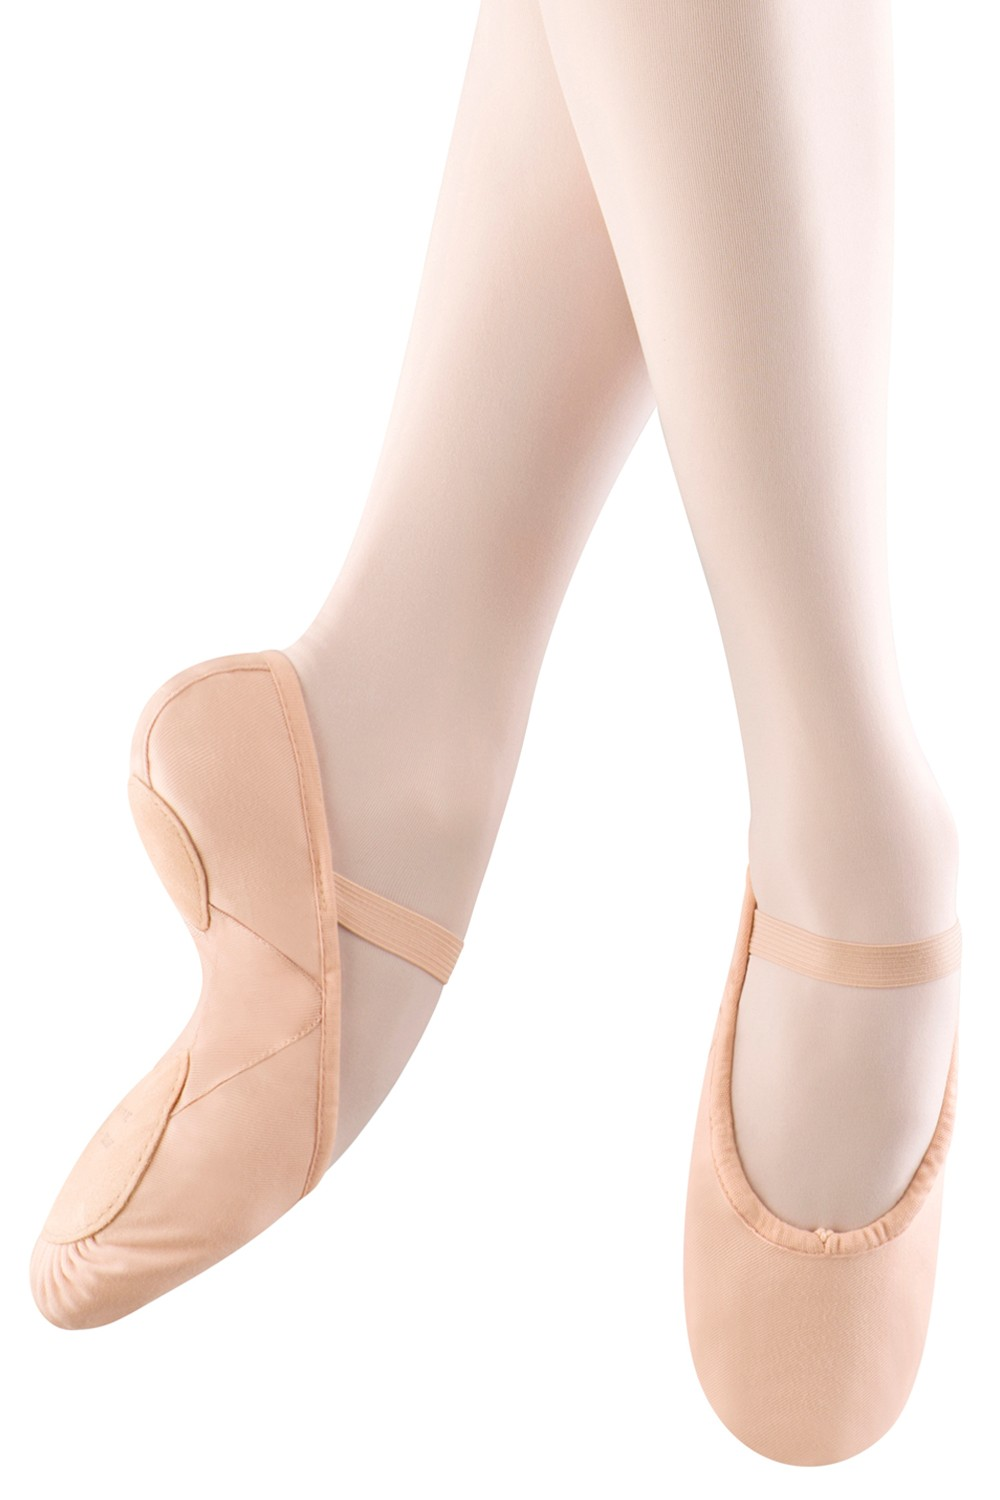 Prolite 2 Canvas Girl's Ballet Shoes